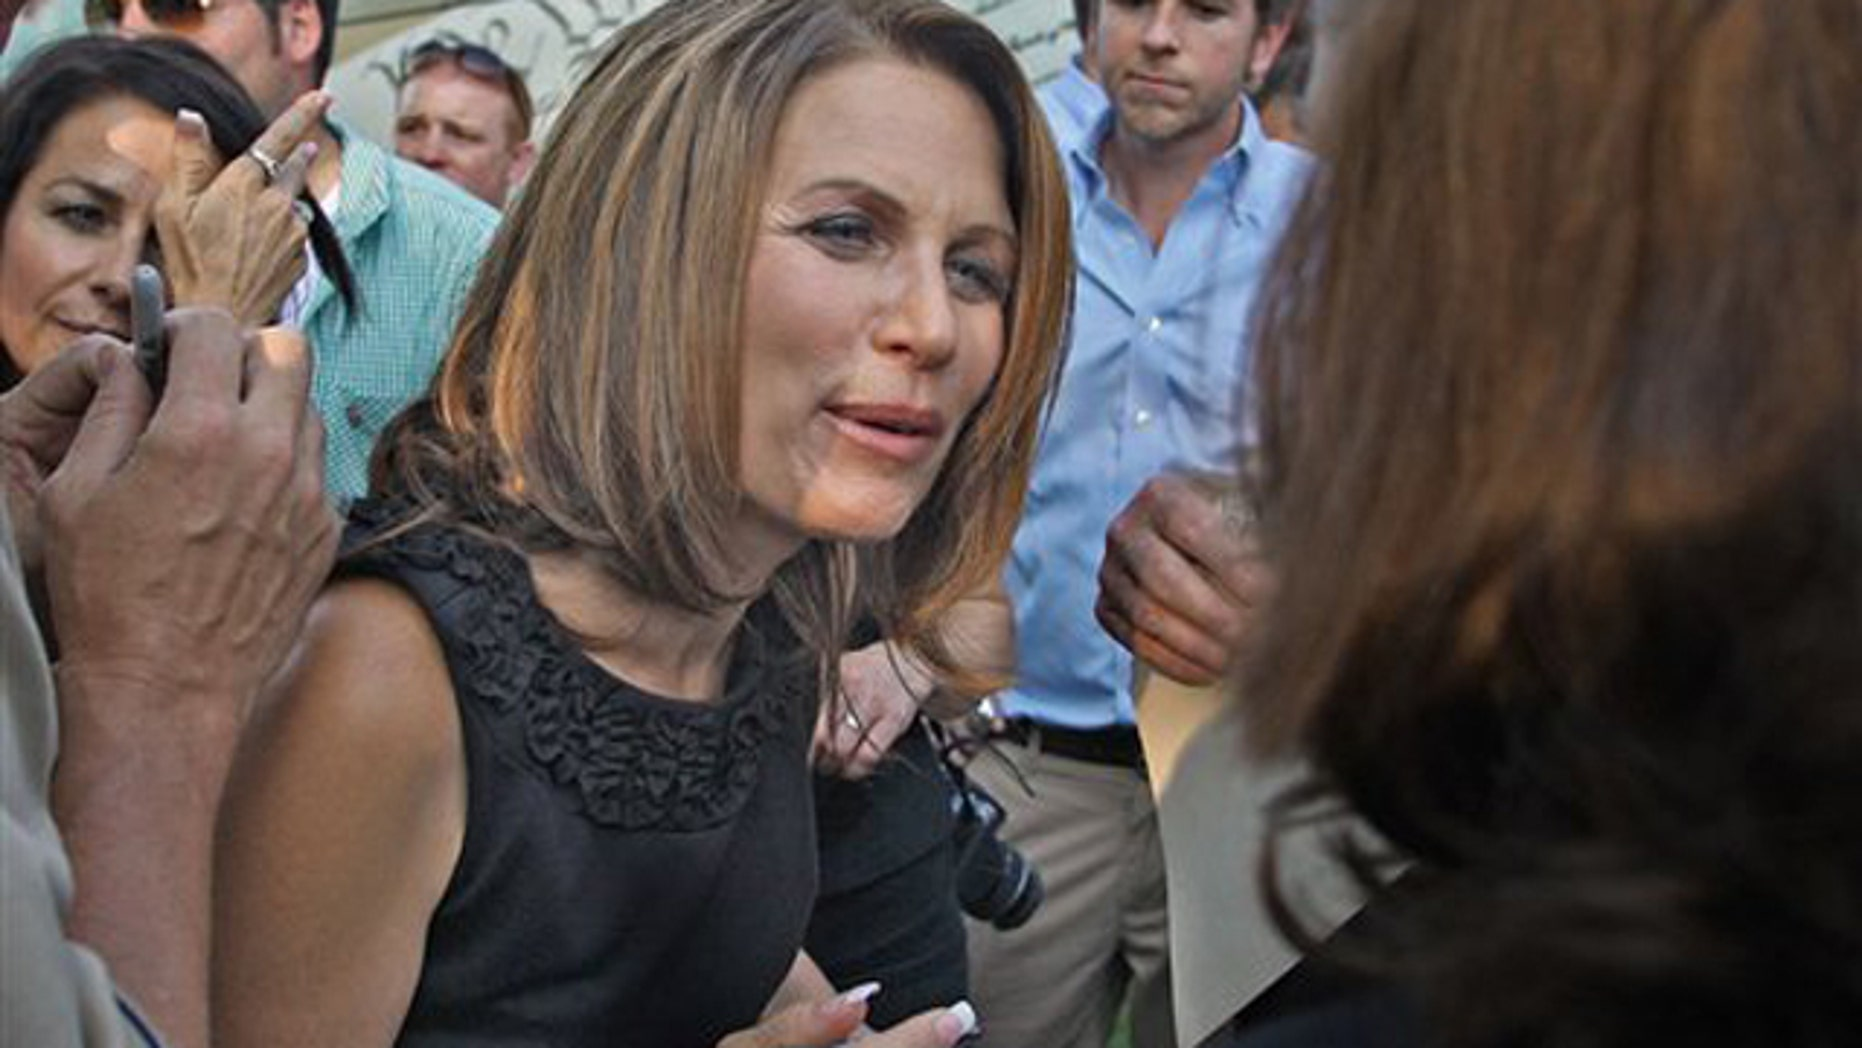 Rep. Michele Bachmann signs autographs during her appearance at a Tea Party Express rally Aug. 31 in Des Moines, Iowa.